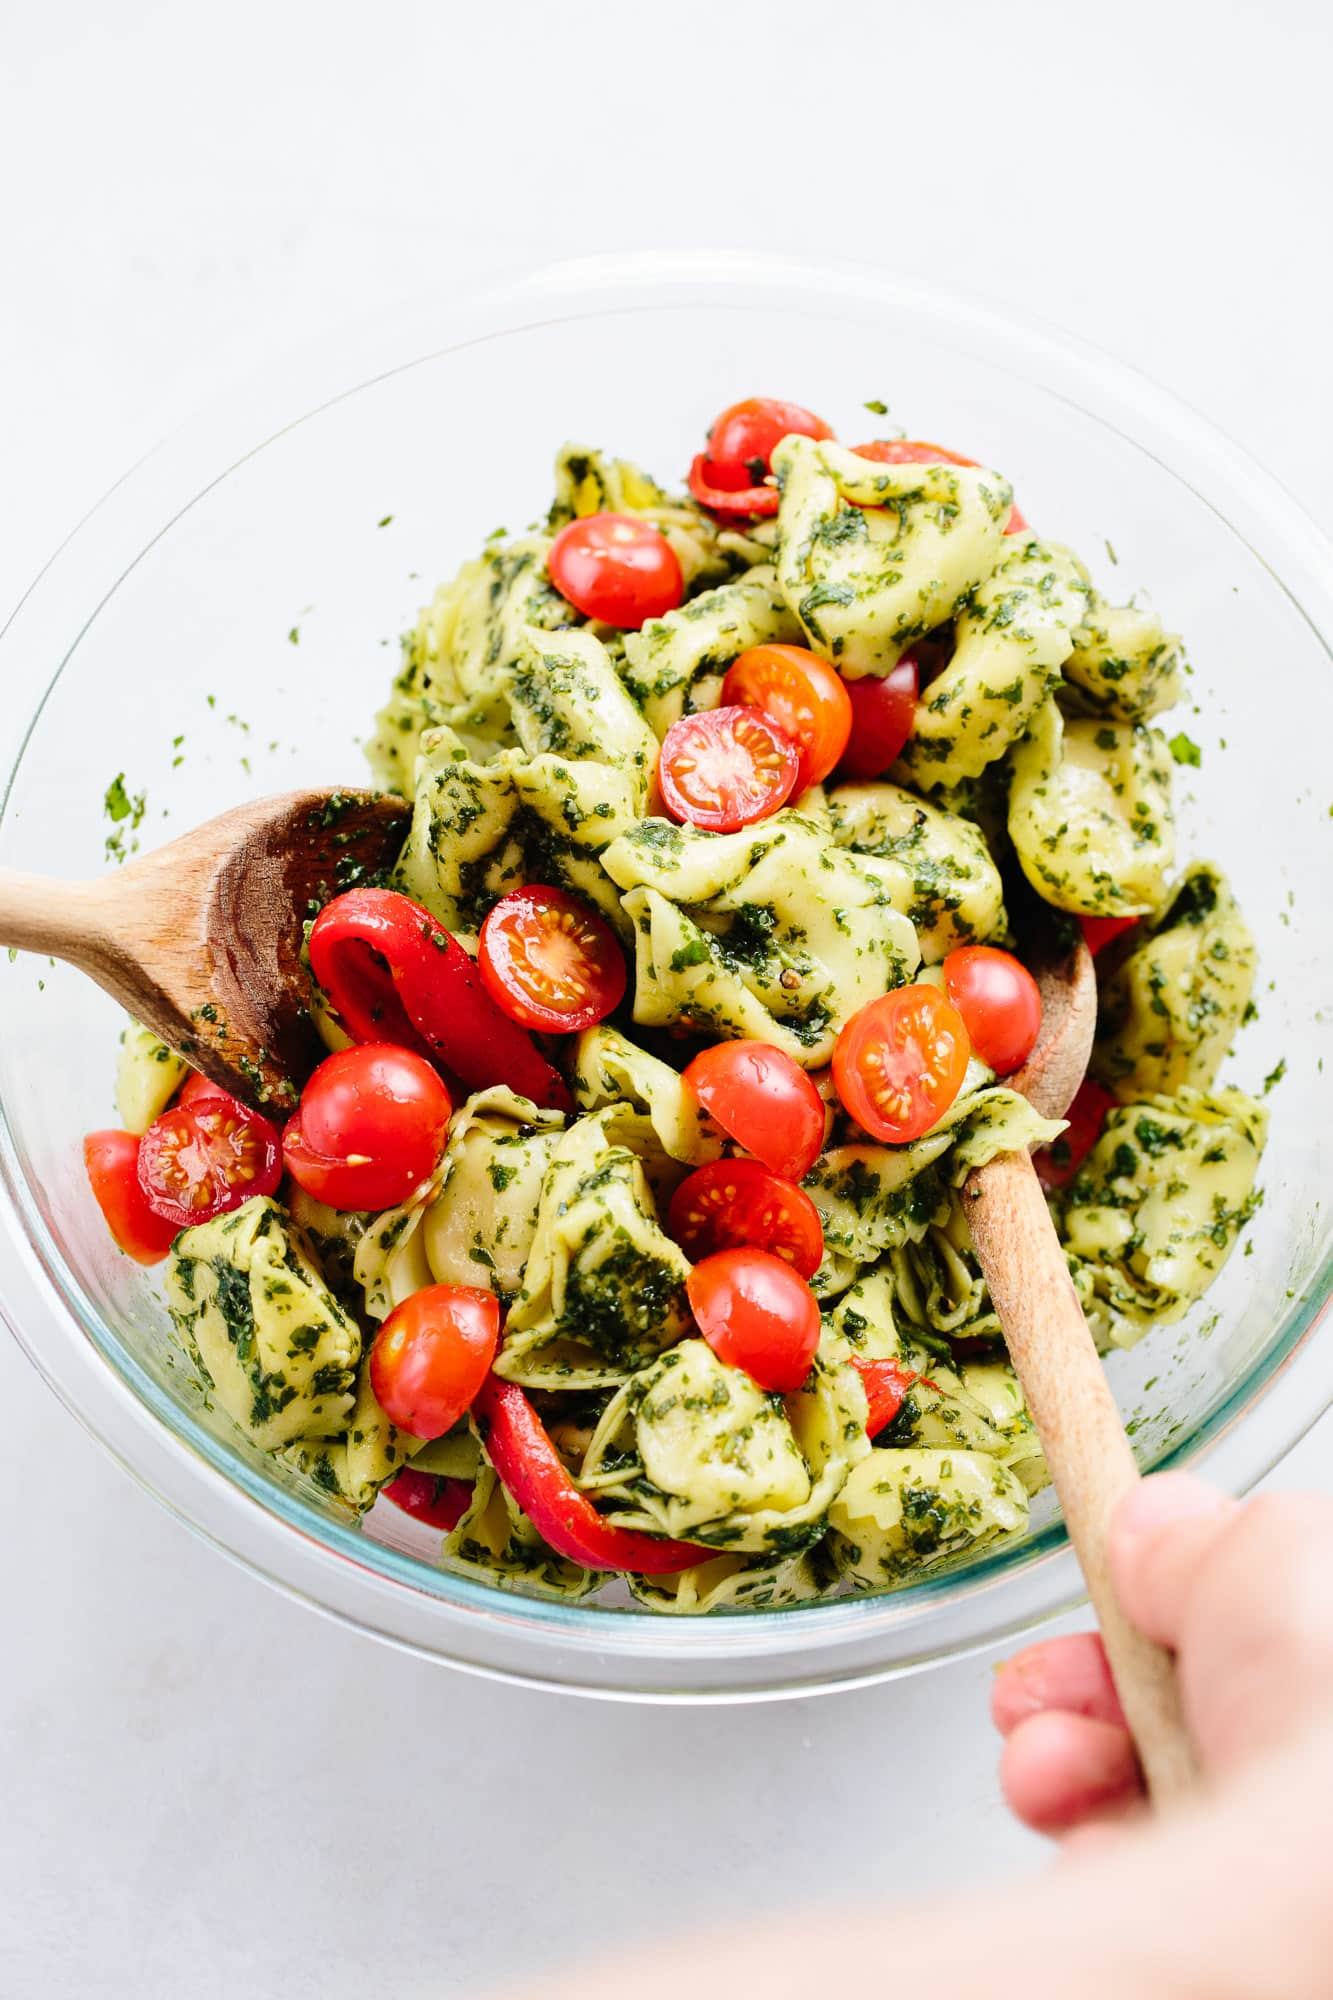 Recipe: Pesto Tortellini Pasta Salad